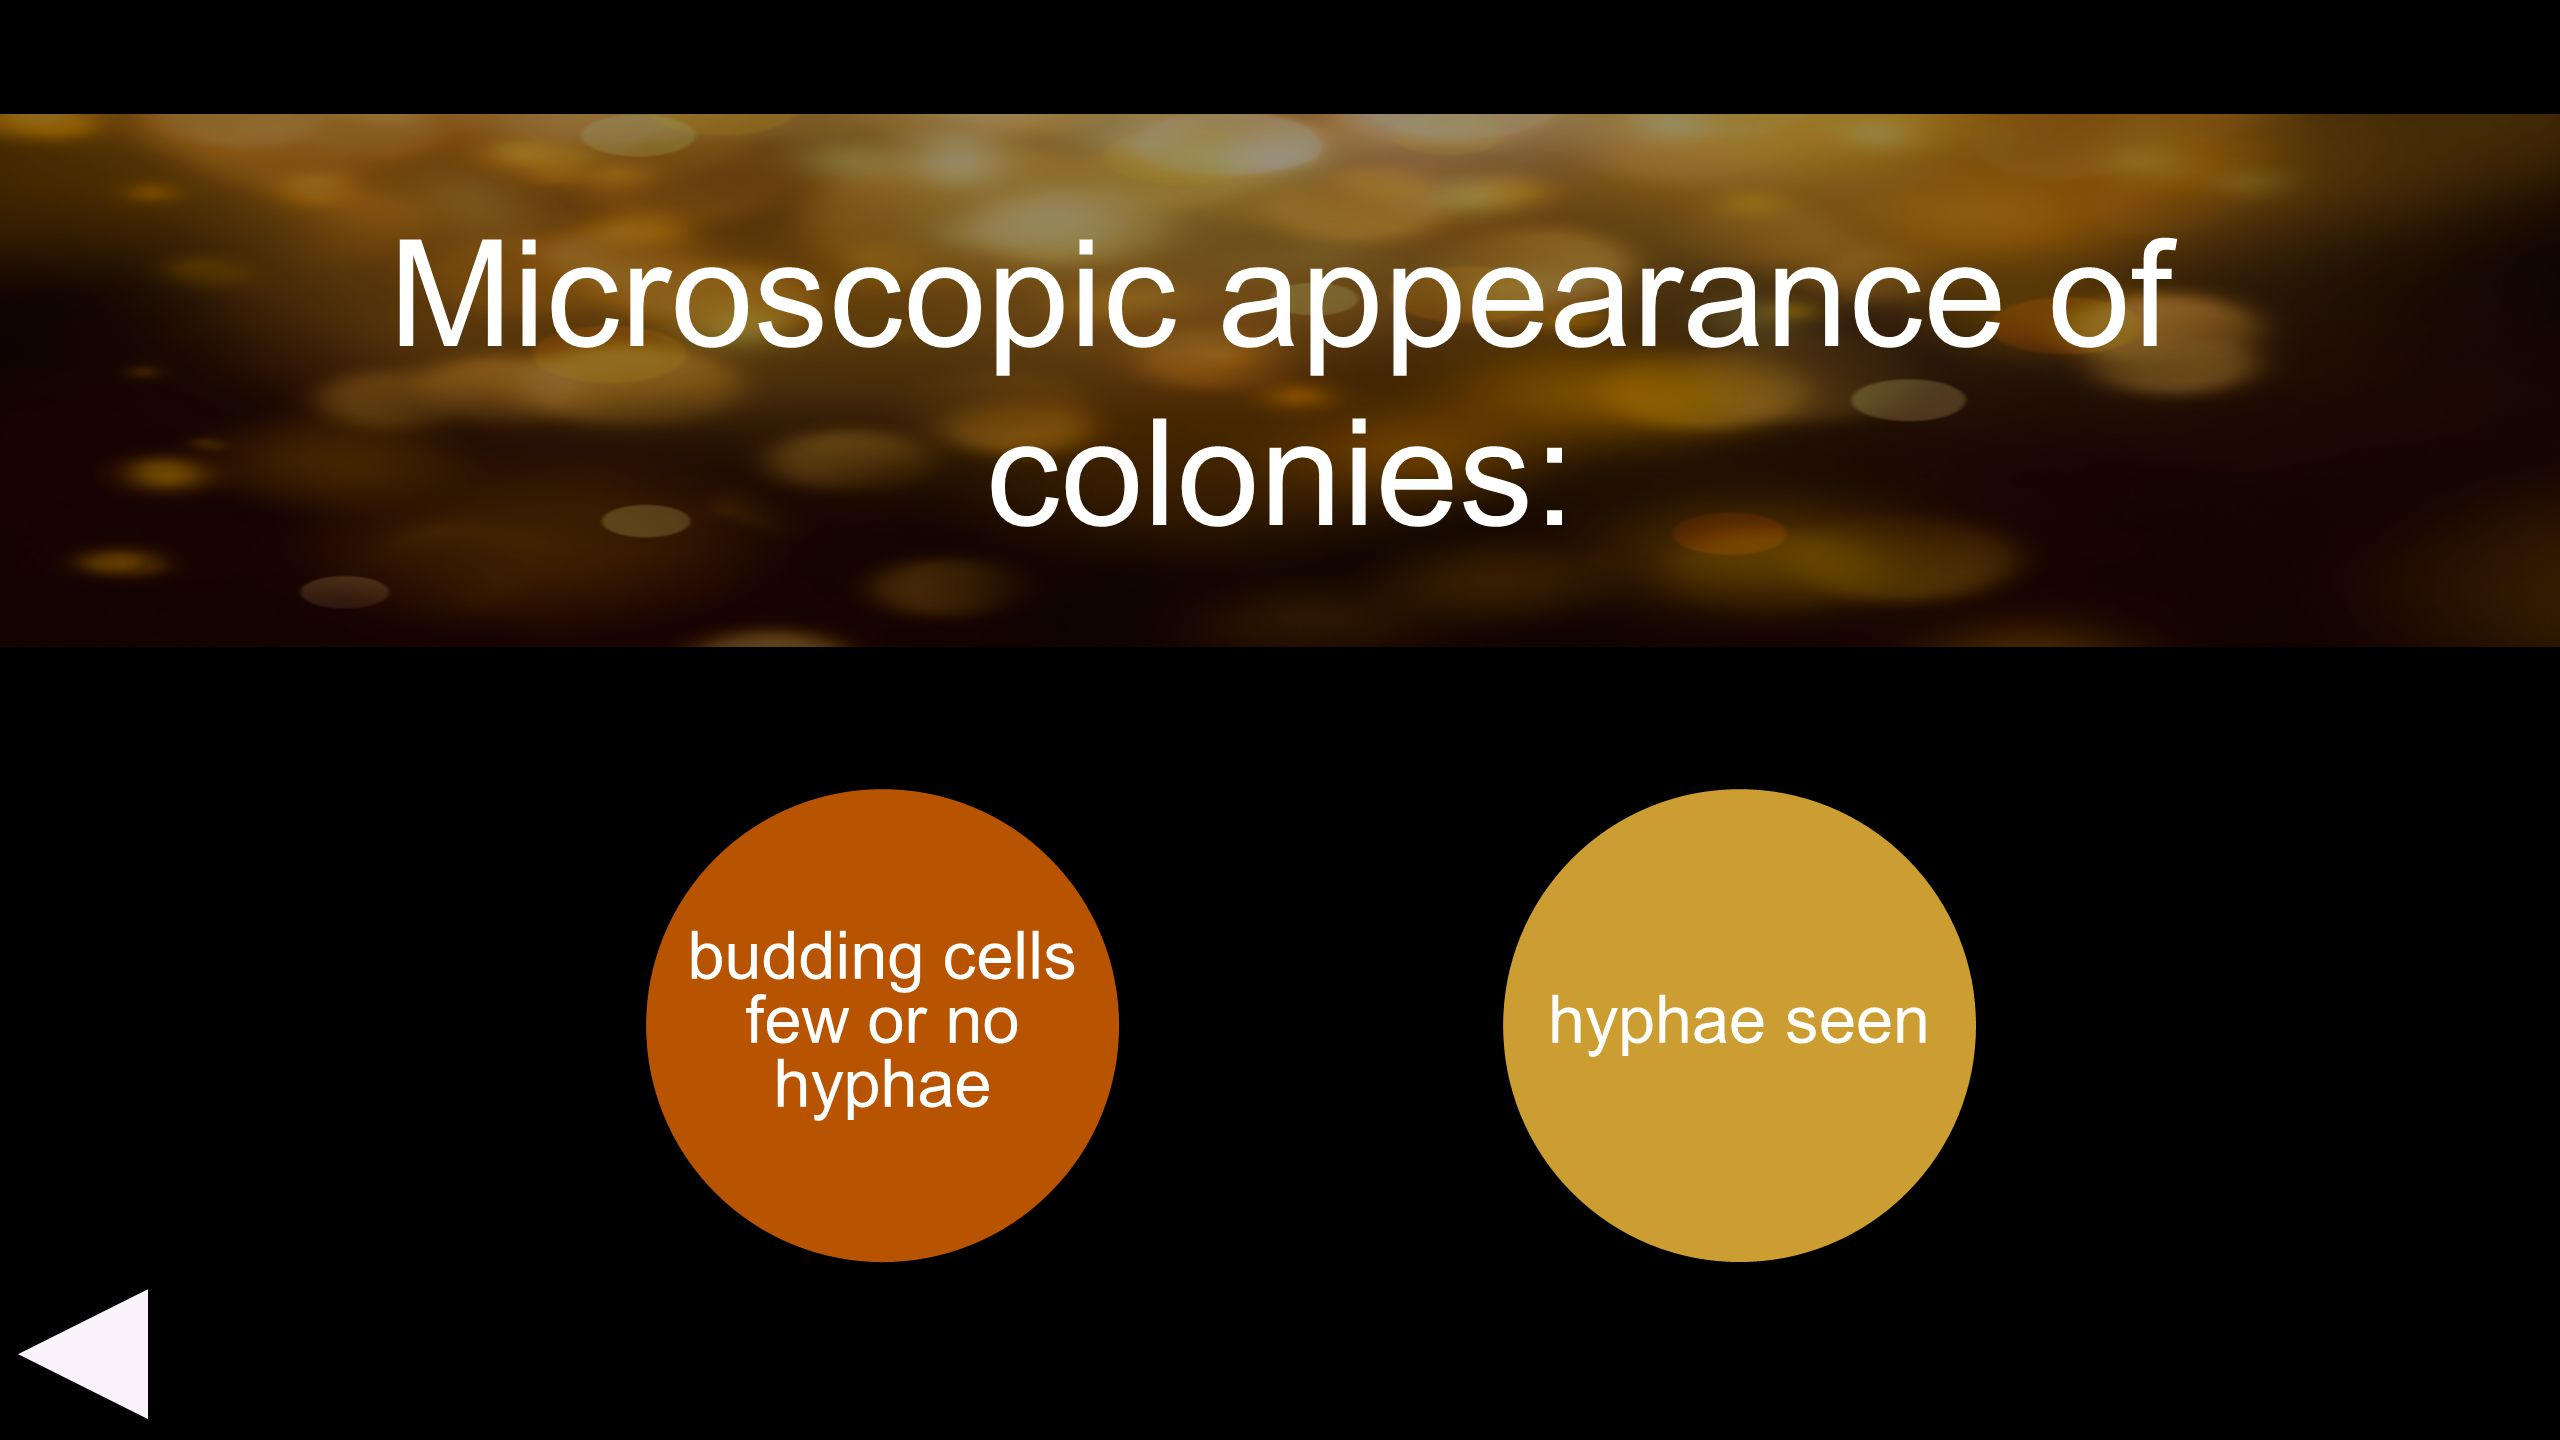 Microscopic appearance of colonies: